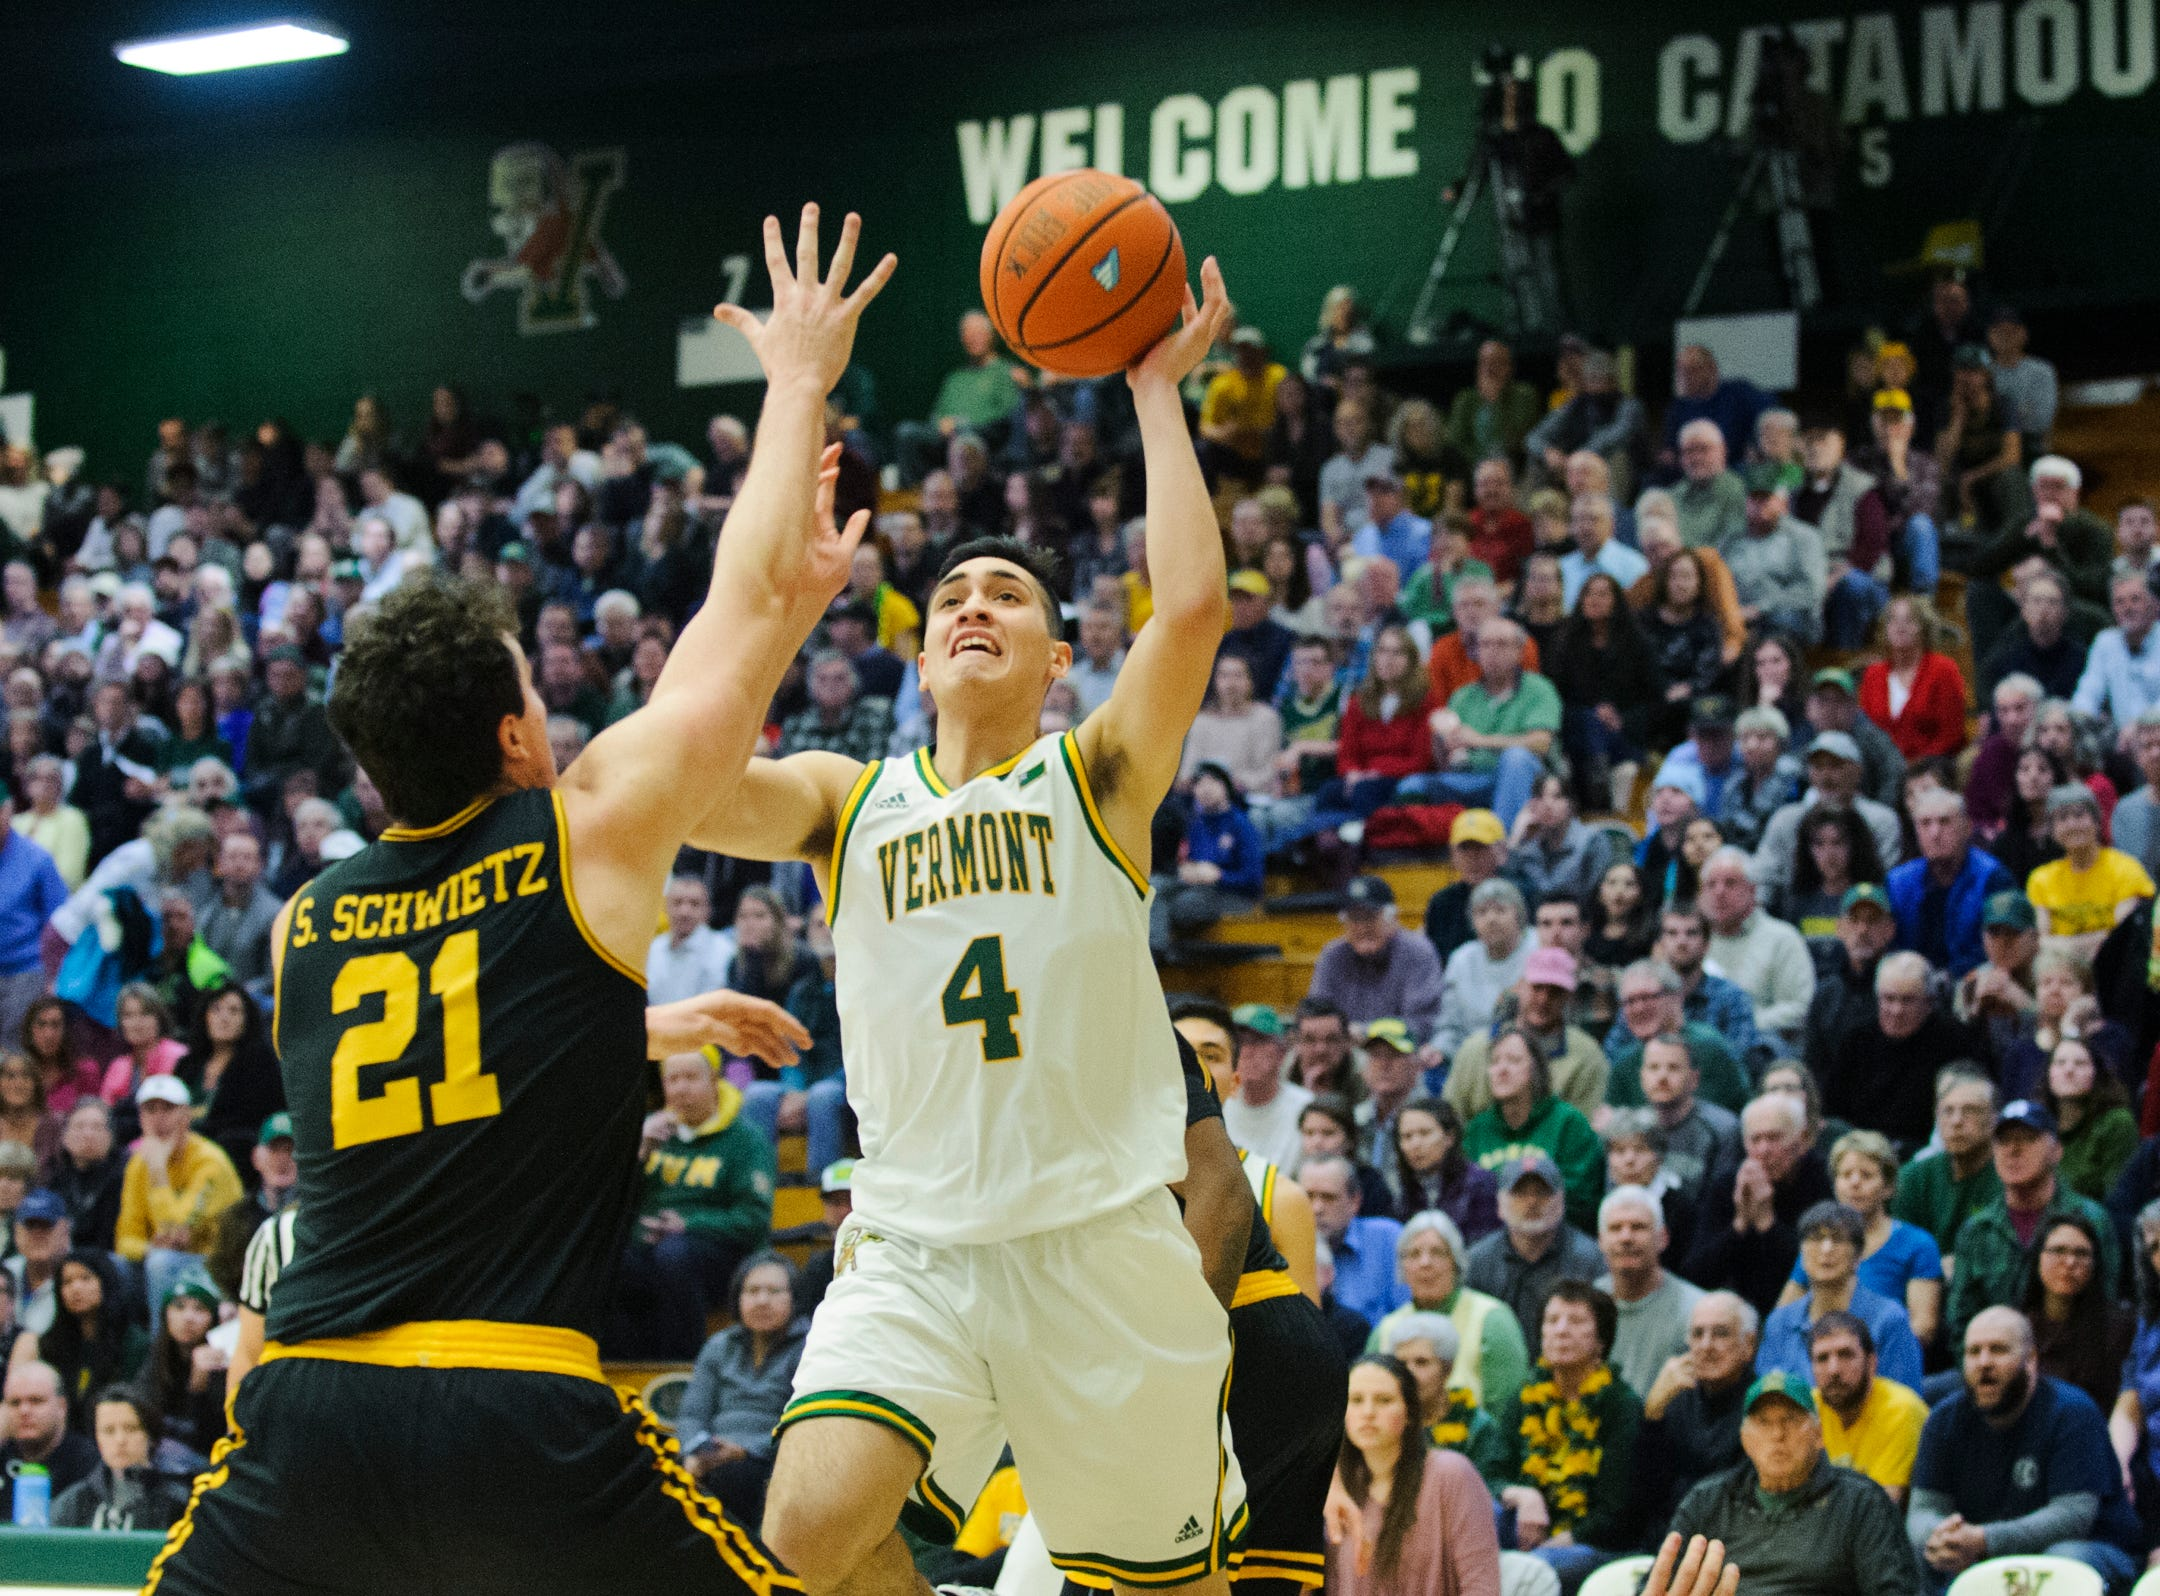 Vermont guard Robin Duncan (4) shoots the ball over UMBC's Sam Schwietz (21) during the men's basketball game between the UMBC Retrievers and the Vermont Catamounts at Patrick Gym on Wednesday night January 23, 2019 in Burlington, Vermont.